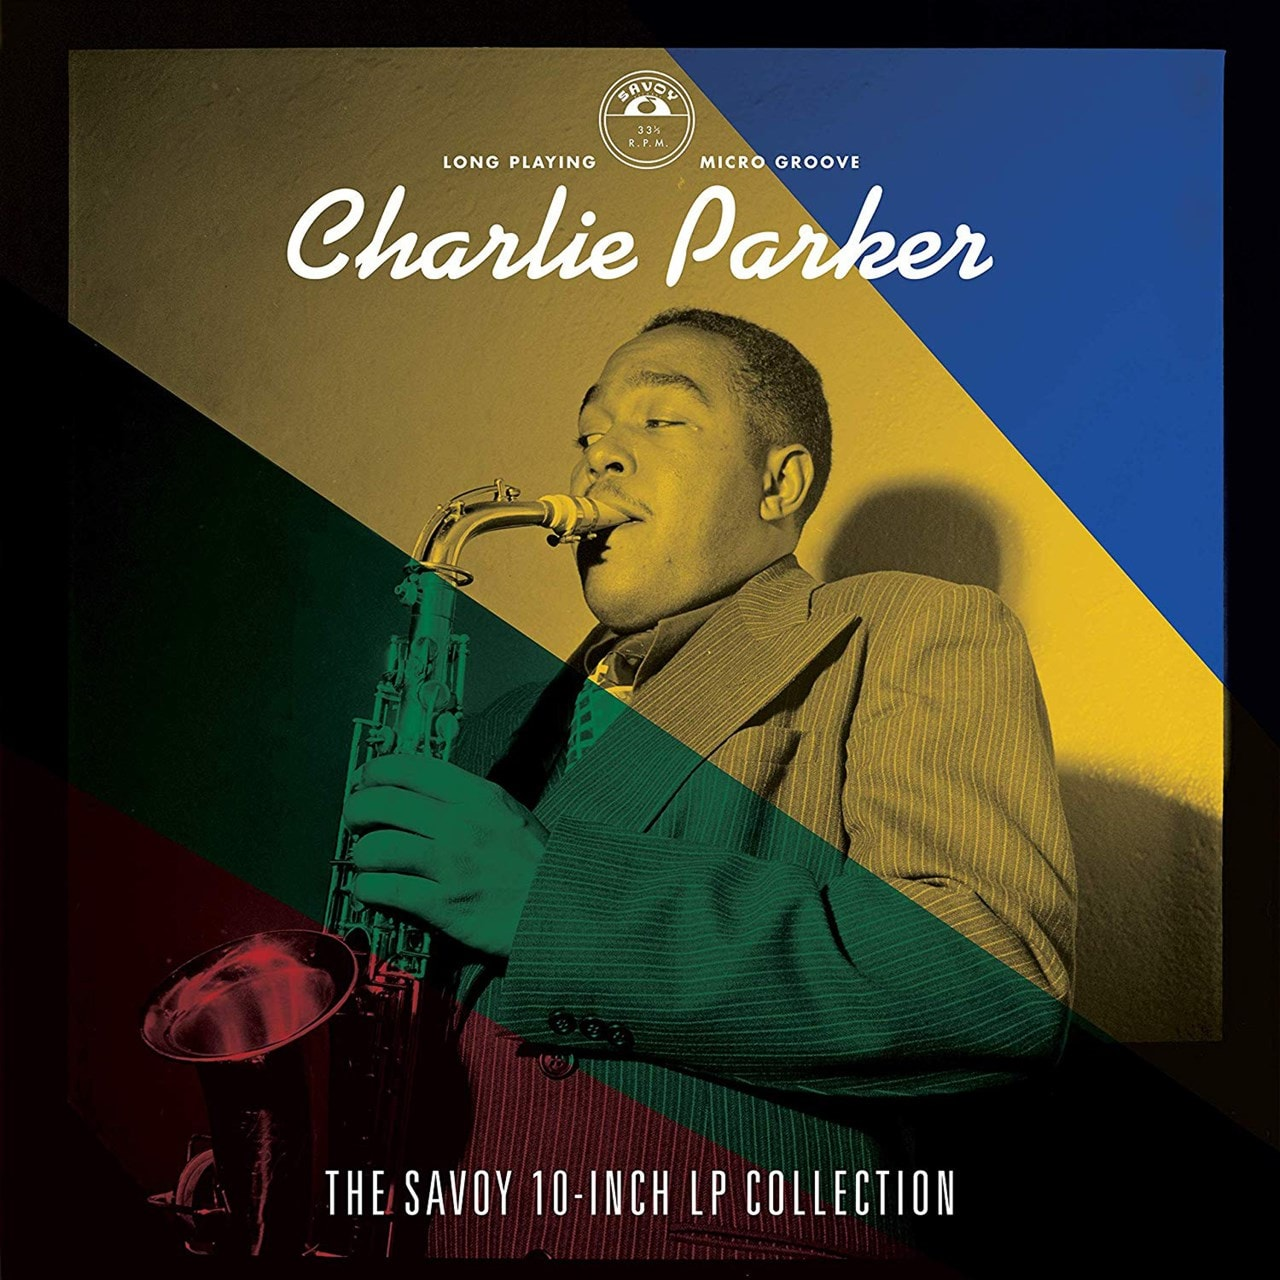 The Savoy 10-inch LP Collection - 1